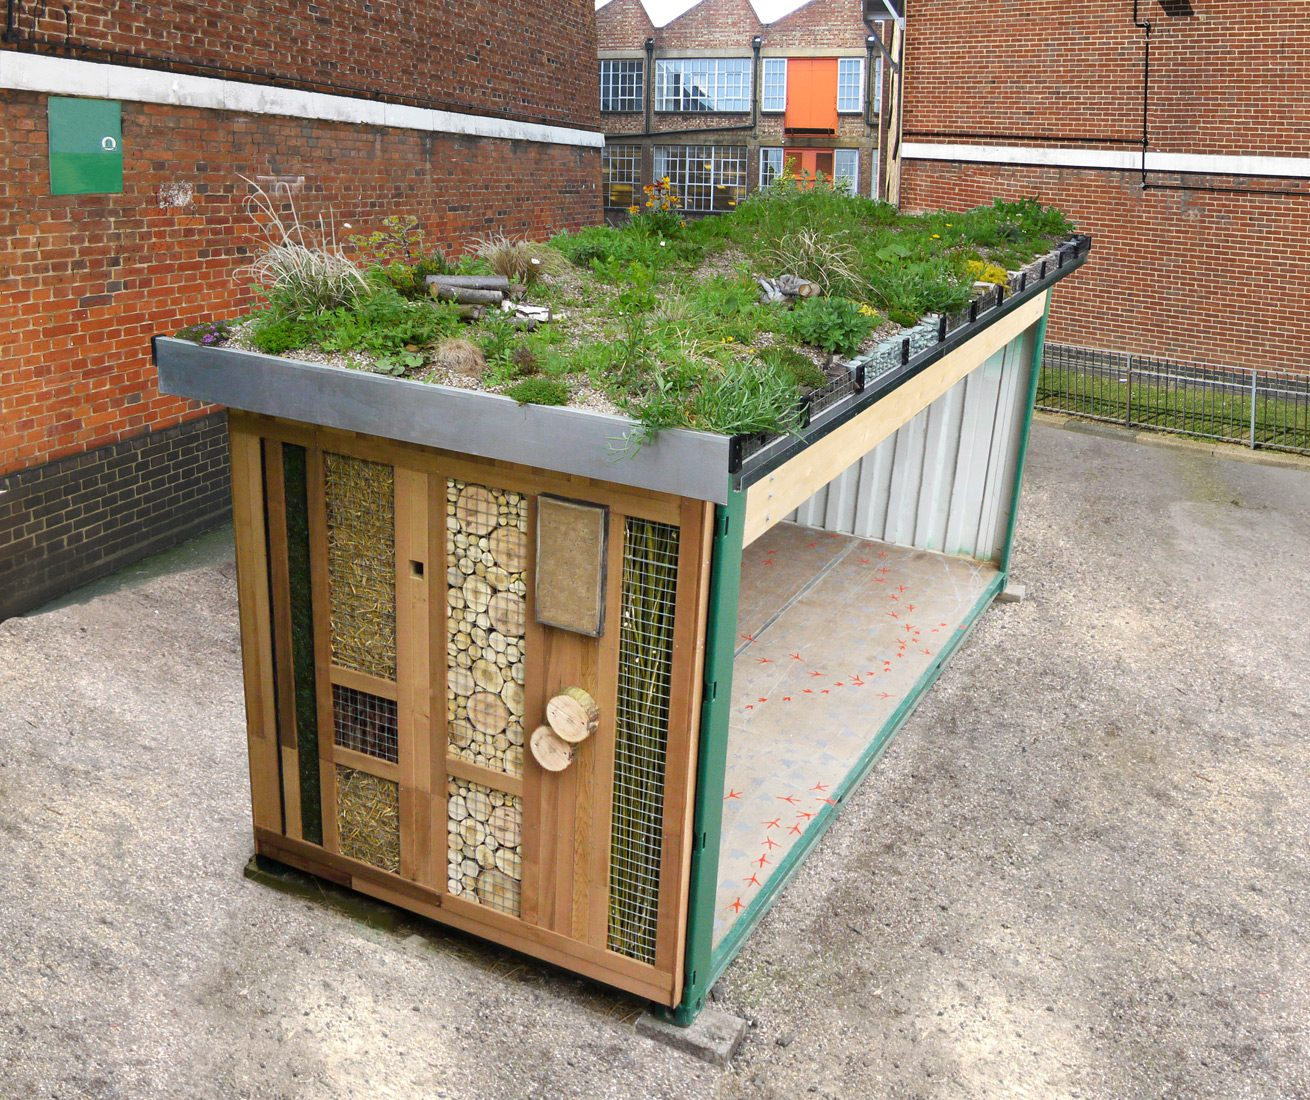 Duncan Kramer – Green Roof Shelter, Green Roof Shelters Ltd. www.greenroofshelters.co.uk